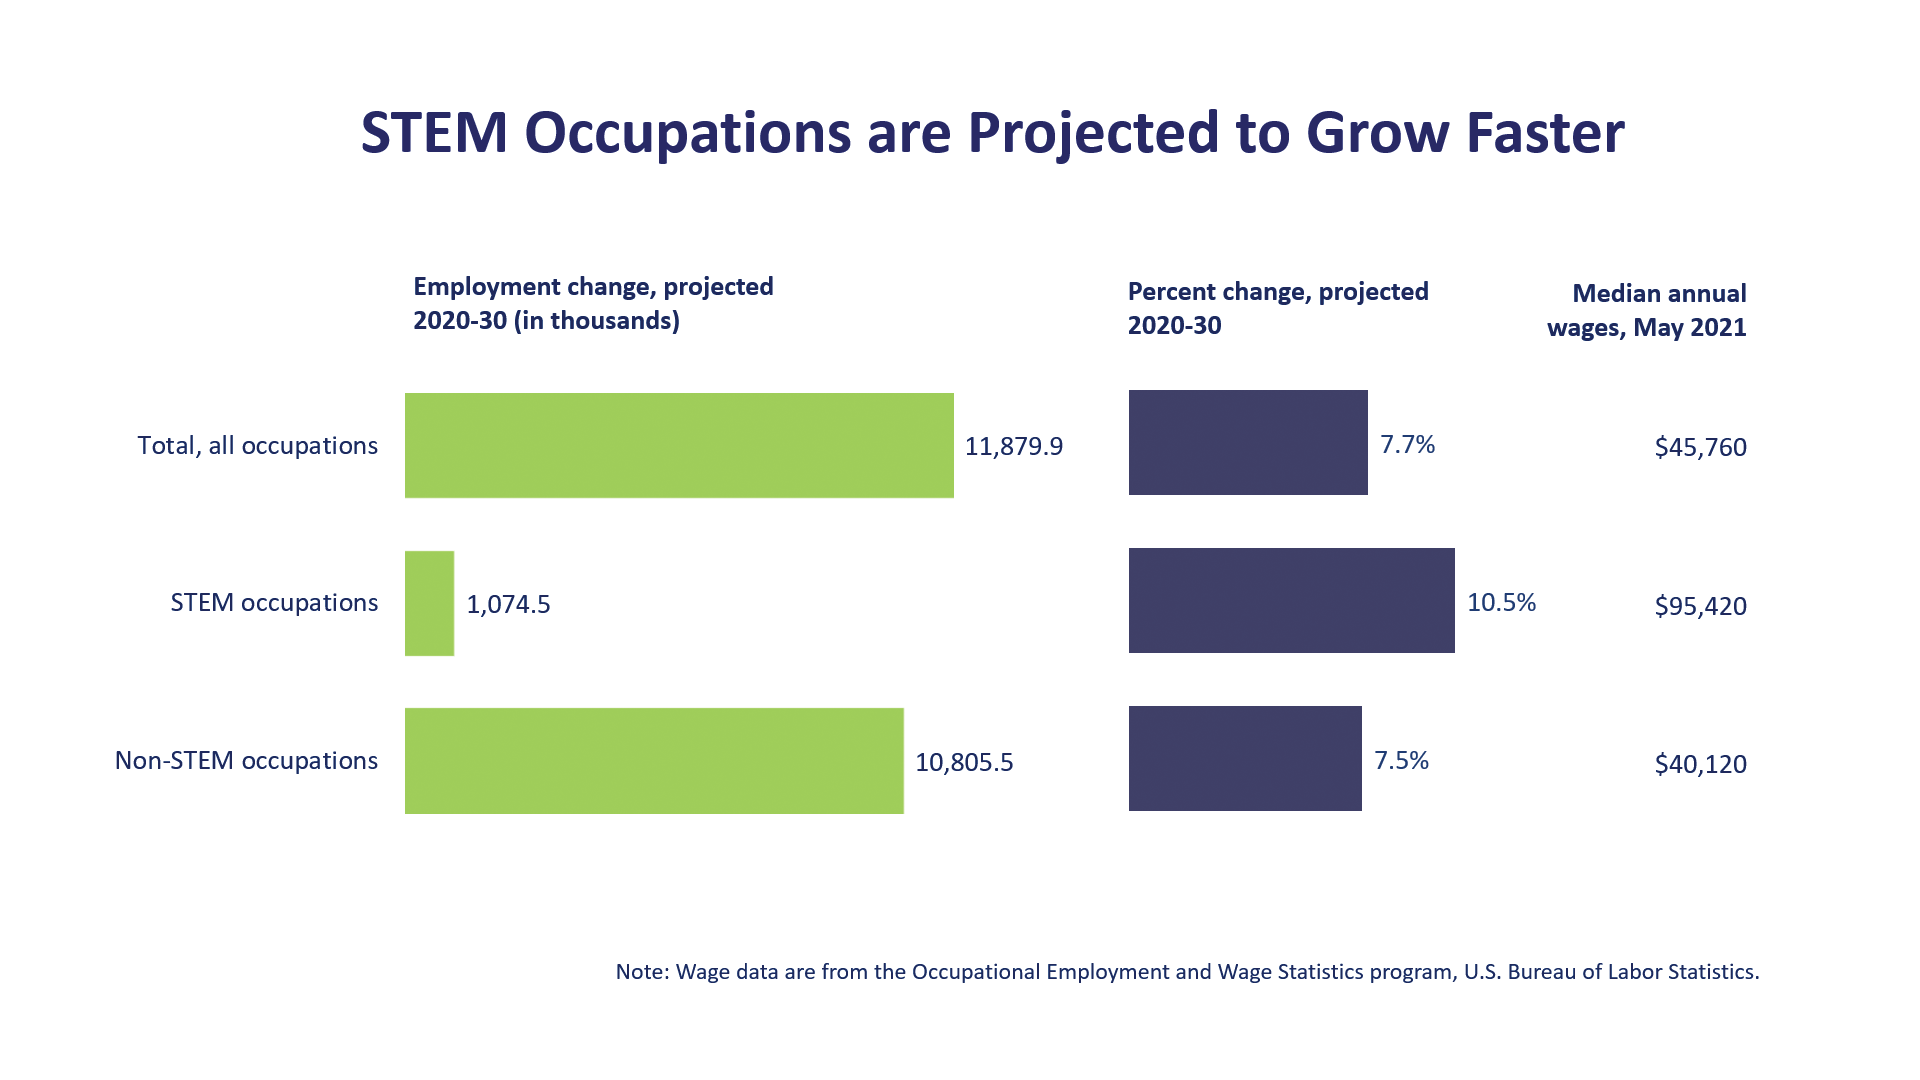 STEM occupations are projected to grow faster than the average for all occupations